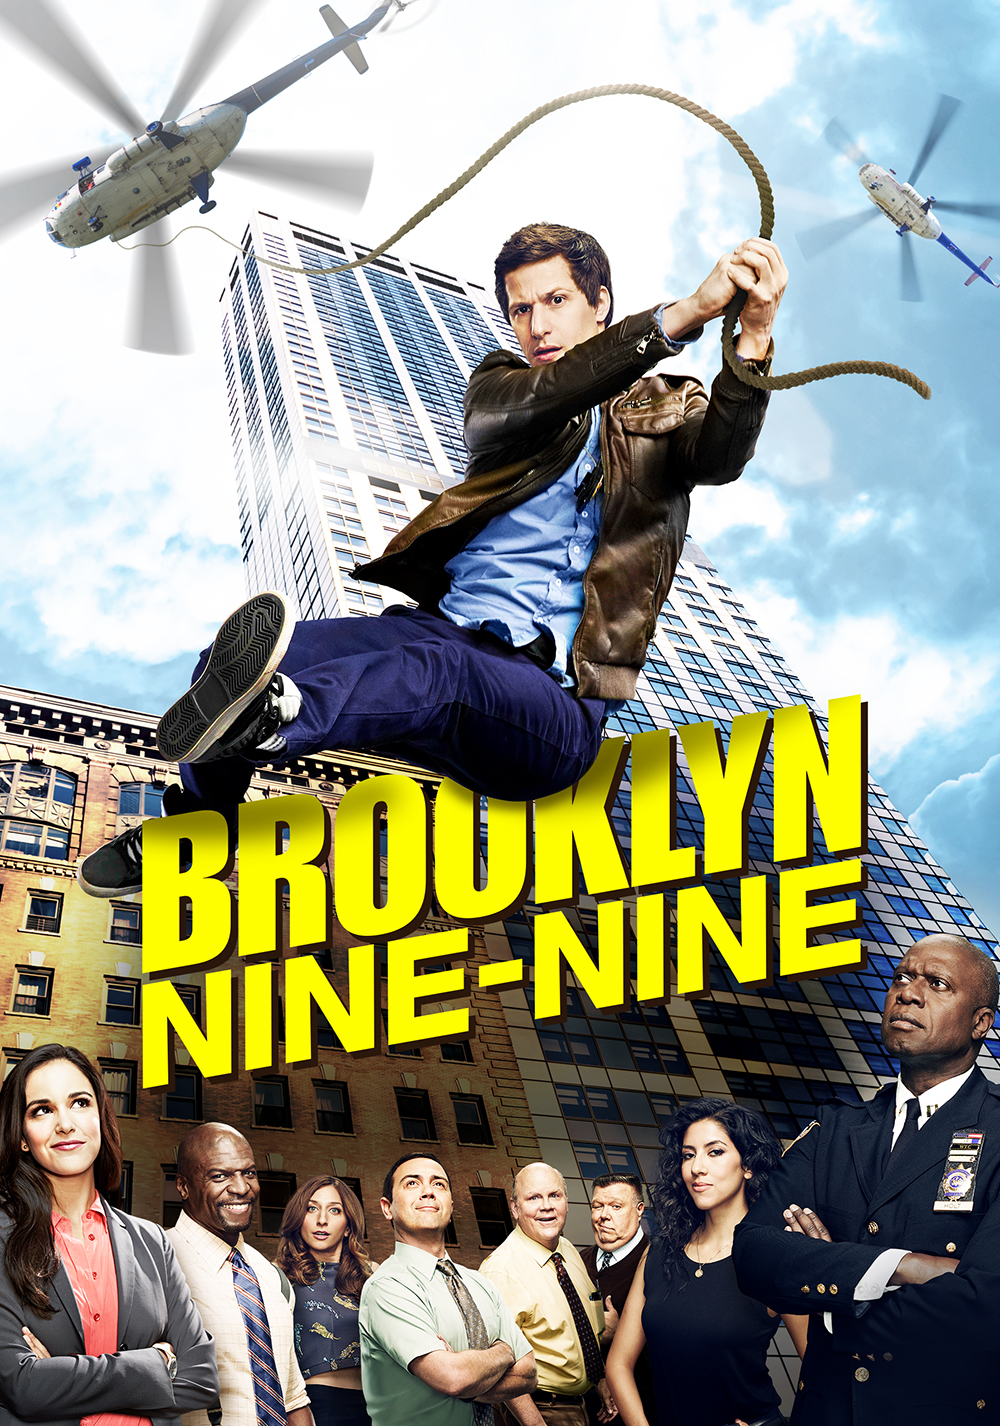 Image result for Brooklyn nine-nine